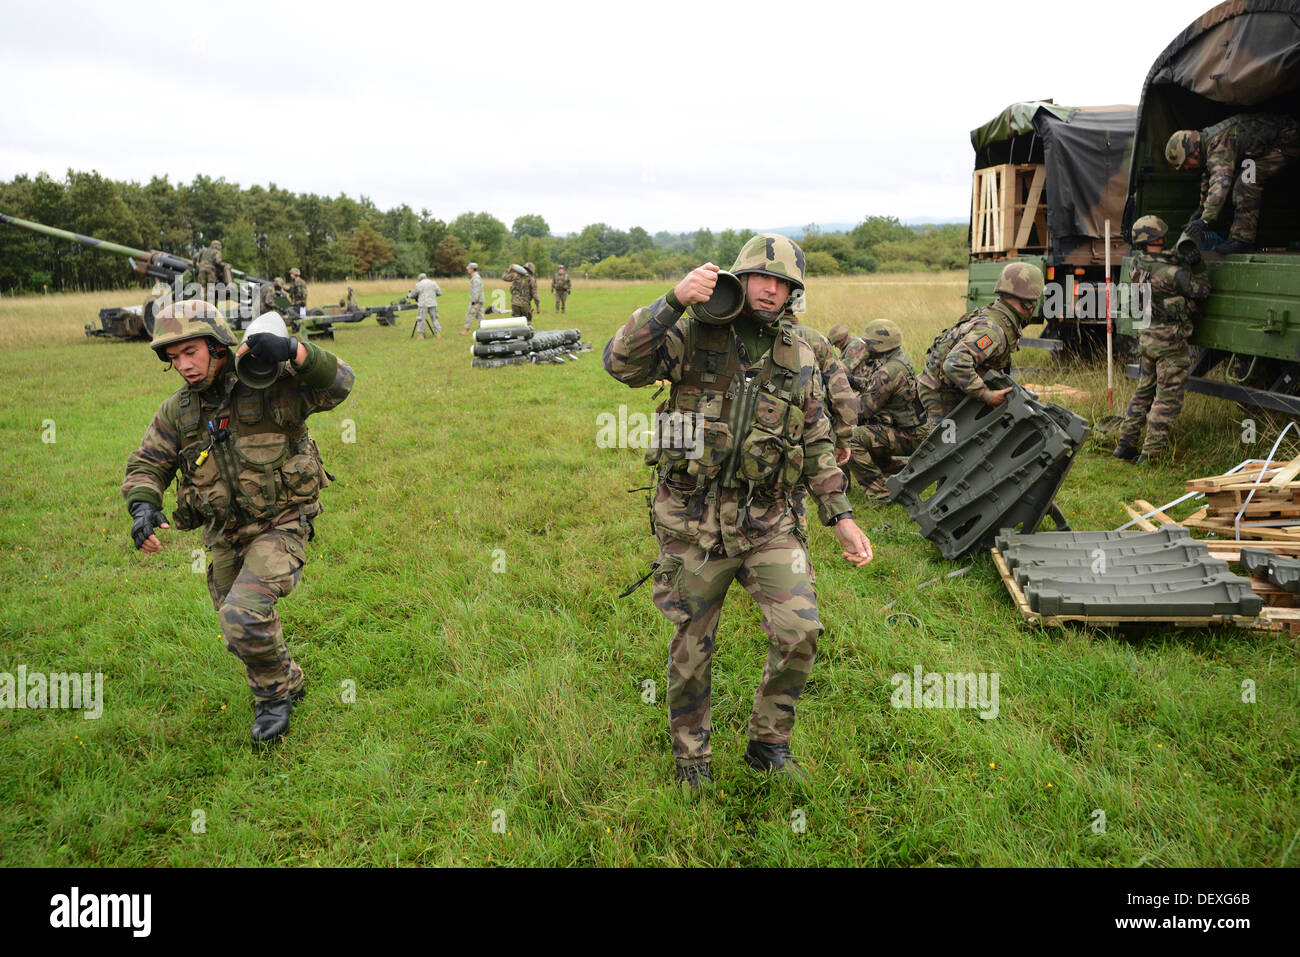 French soldiers carry 155 mm rounds to prepare for a live fire exercise during Combined Endeavor at the Joint Multinational Training Command's Grafenwoehr Training Area, Germany, Sept. 17, 2013. Combined Endeavor is an annual command, control, communicati - Stock Image